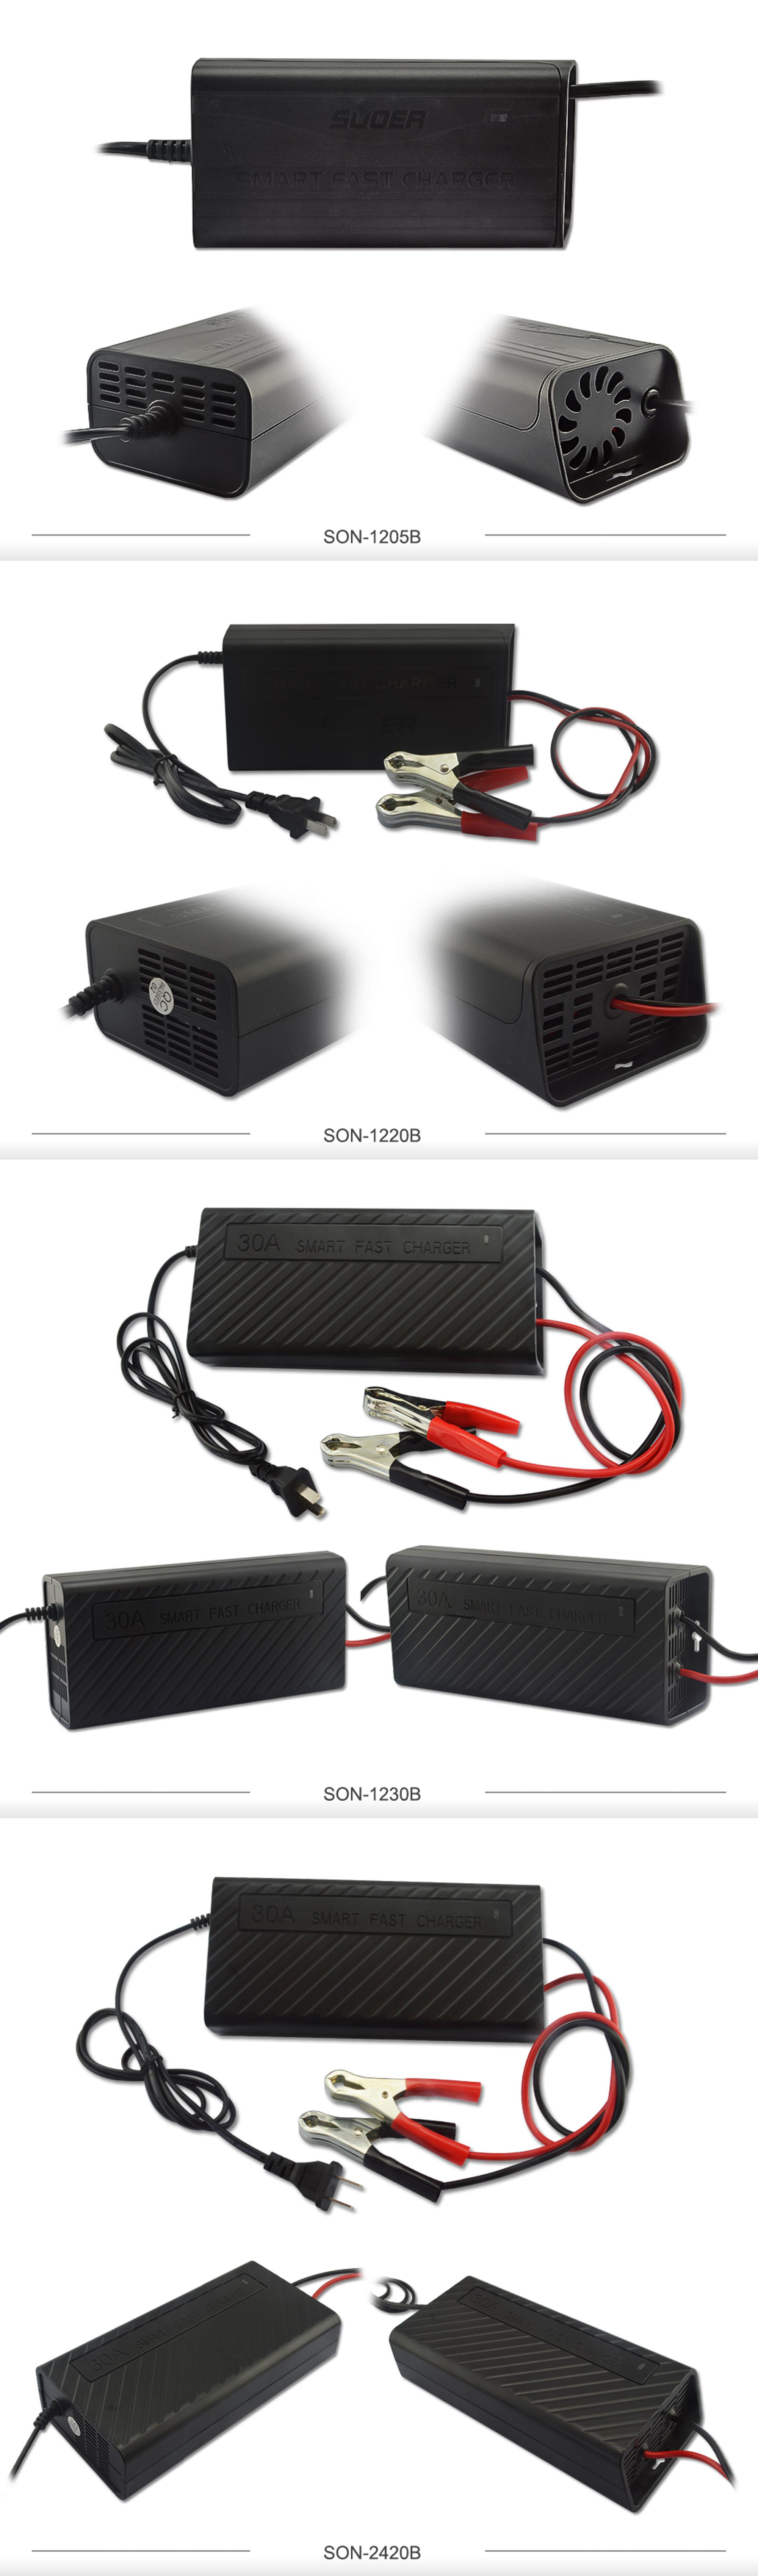 Suoer Smart Fan four-phase charging 12V 5A Universal Battery Charger